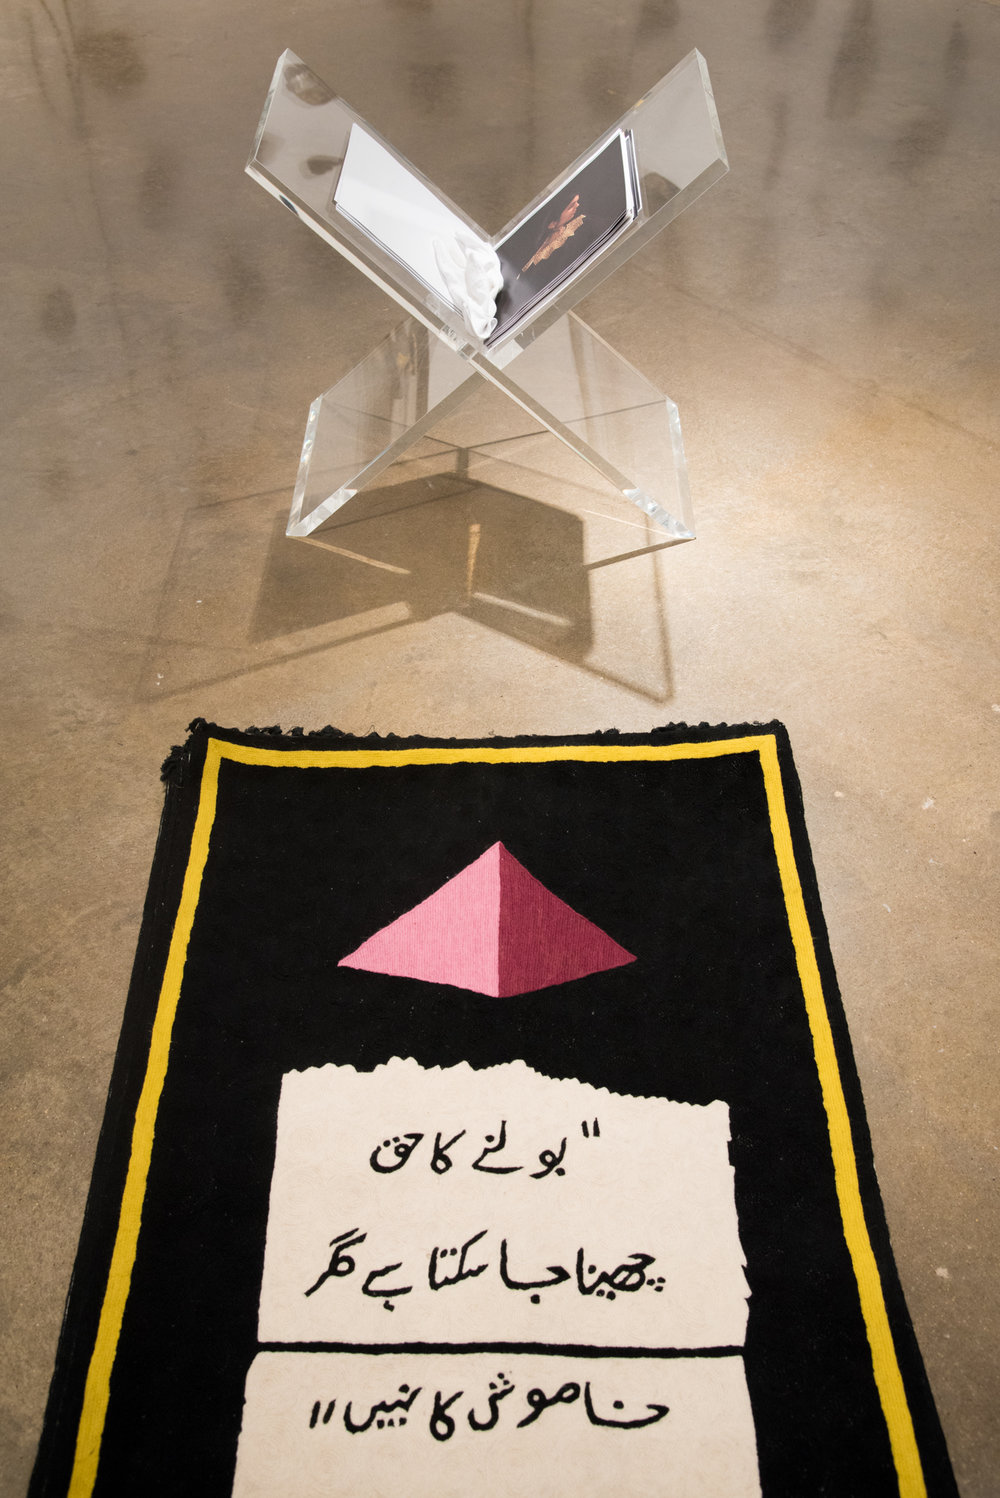 at TCU Moudy Gallery, Act Up , Handmade wool rugs custom designed by artist, made in Kashmir, India, 48 × 30 in, 2017